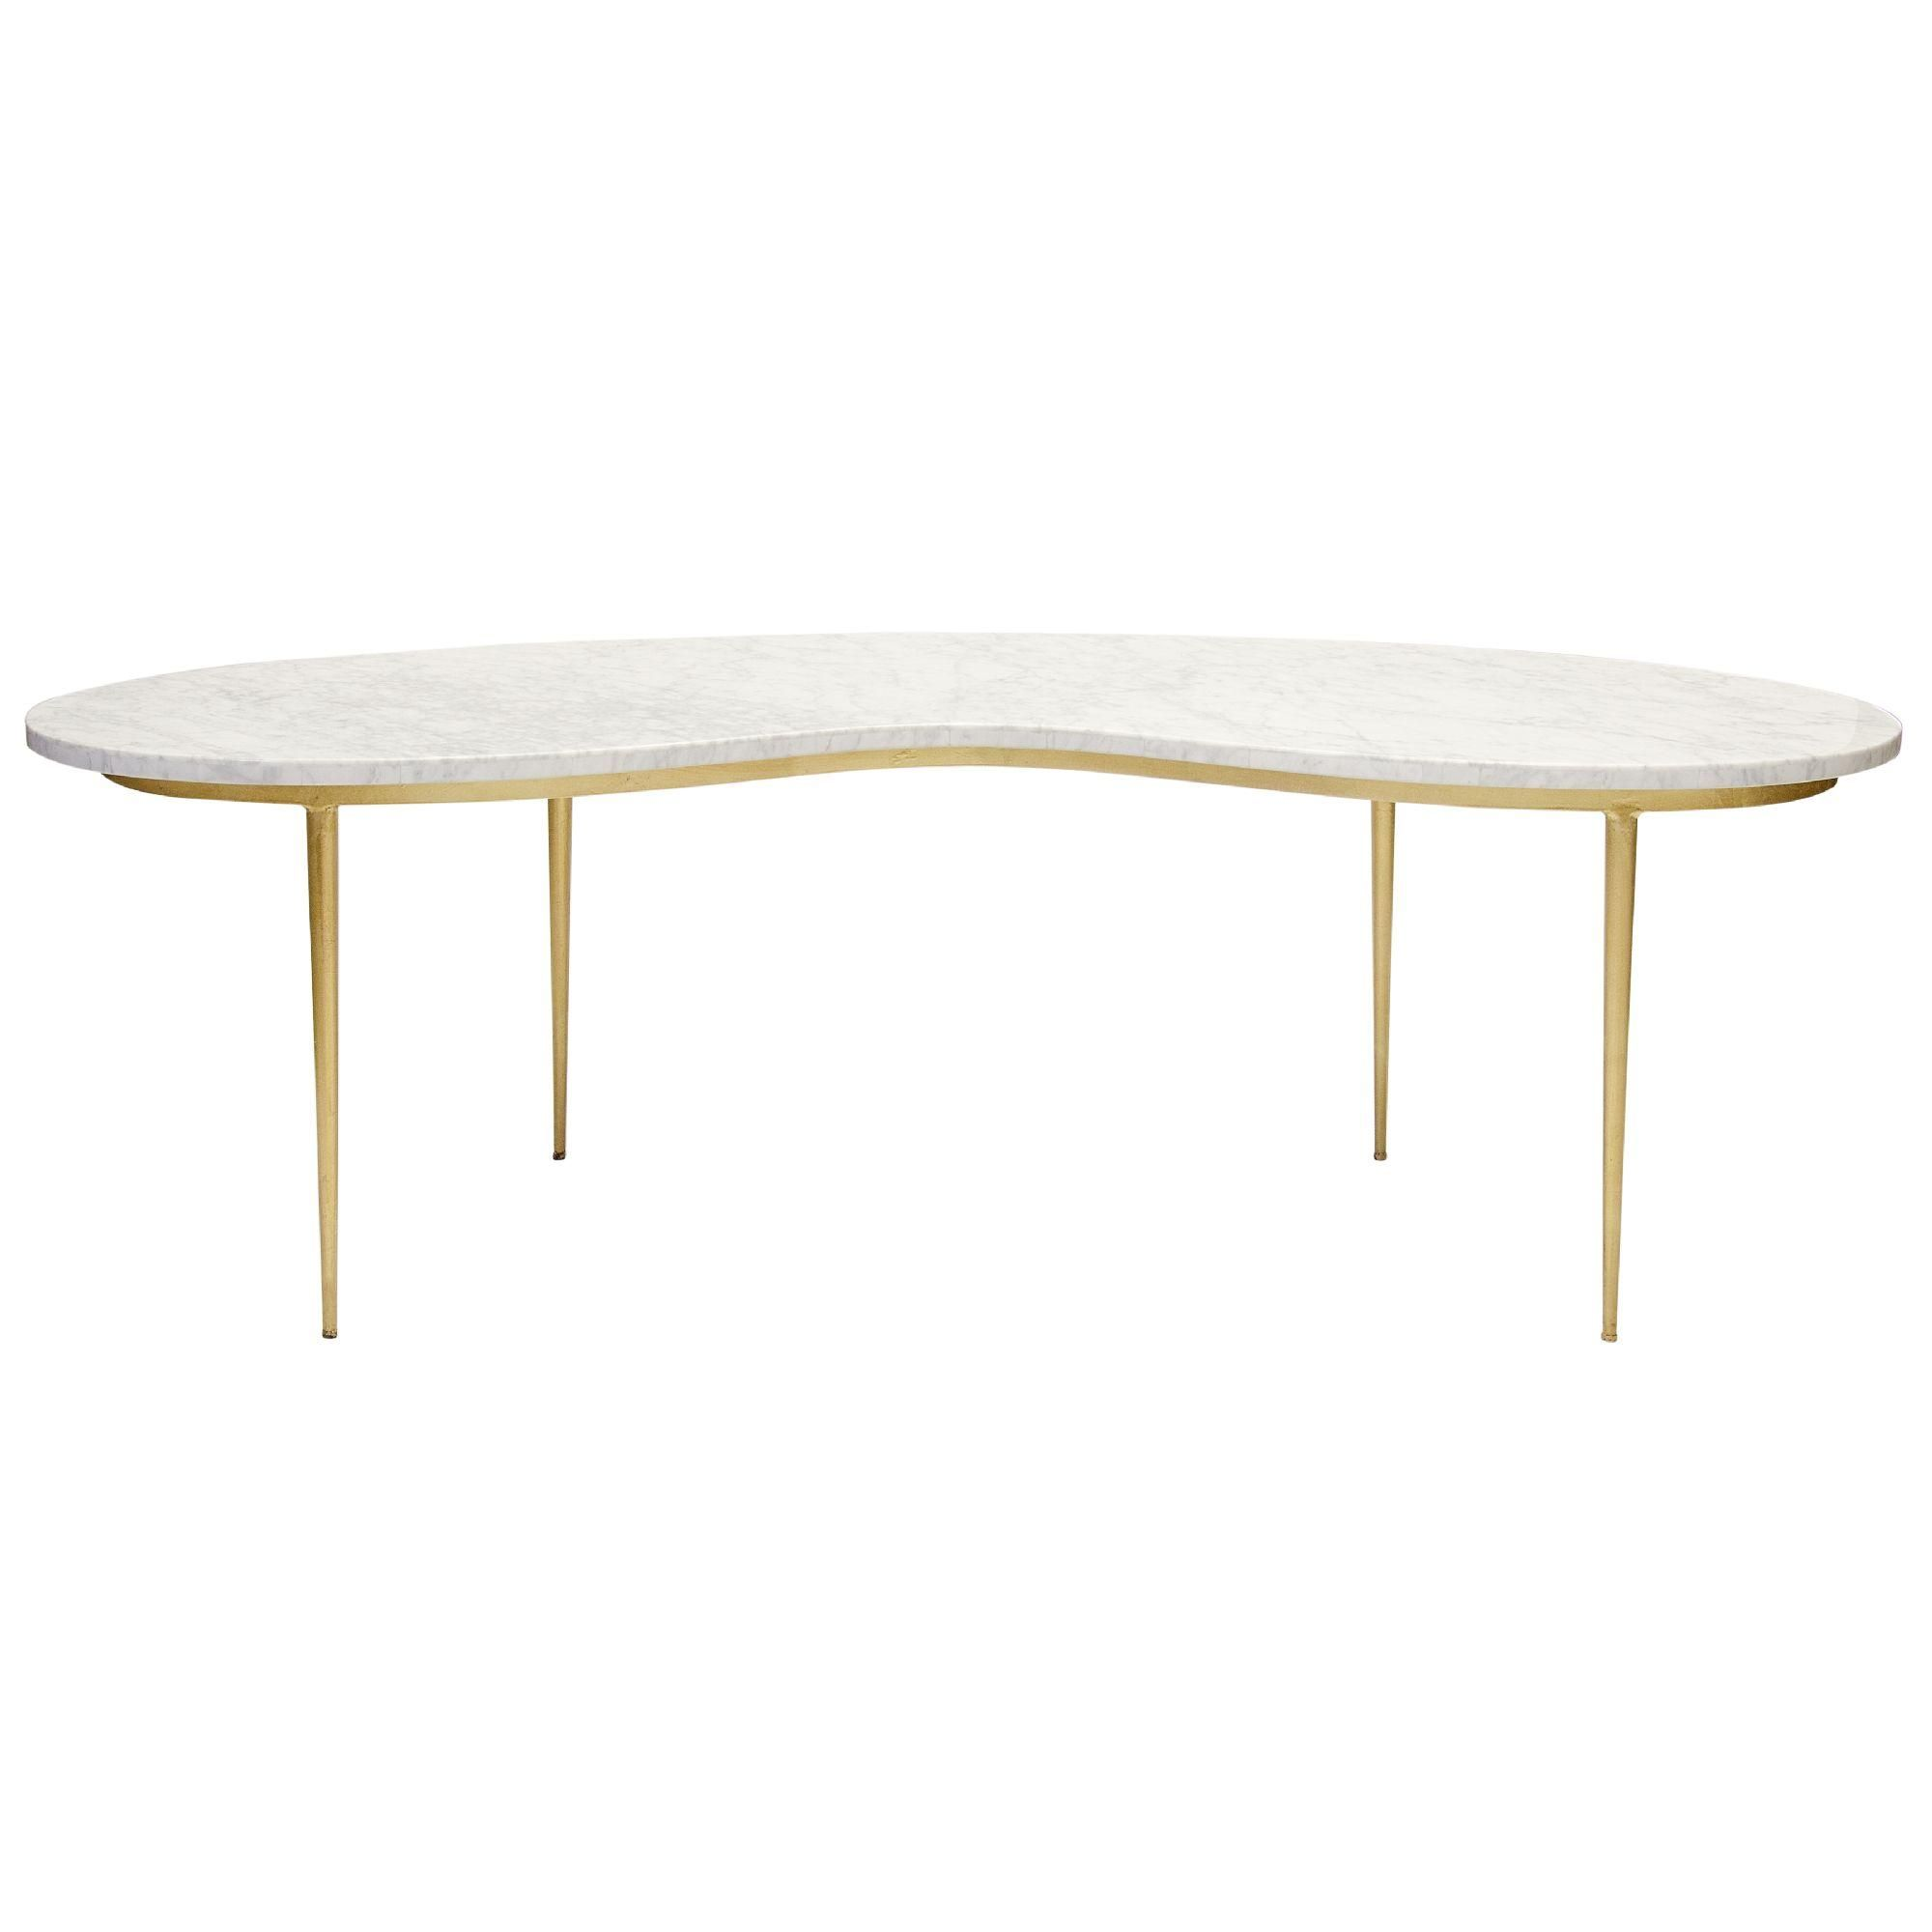 Kidney shaped marble coffee table with gold leaf iron base